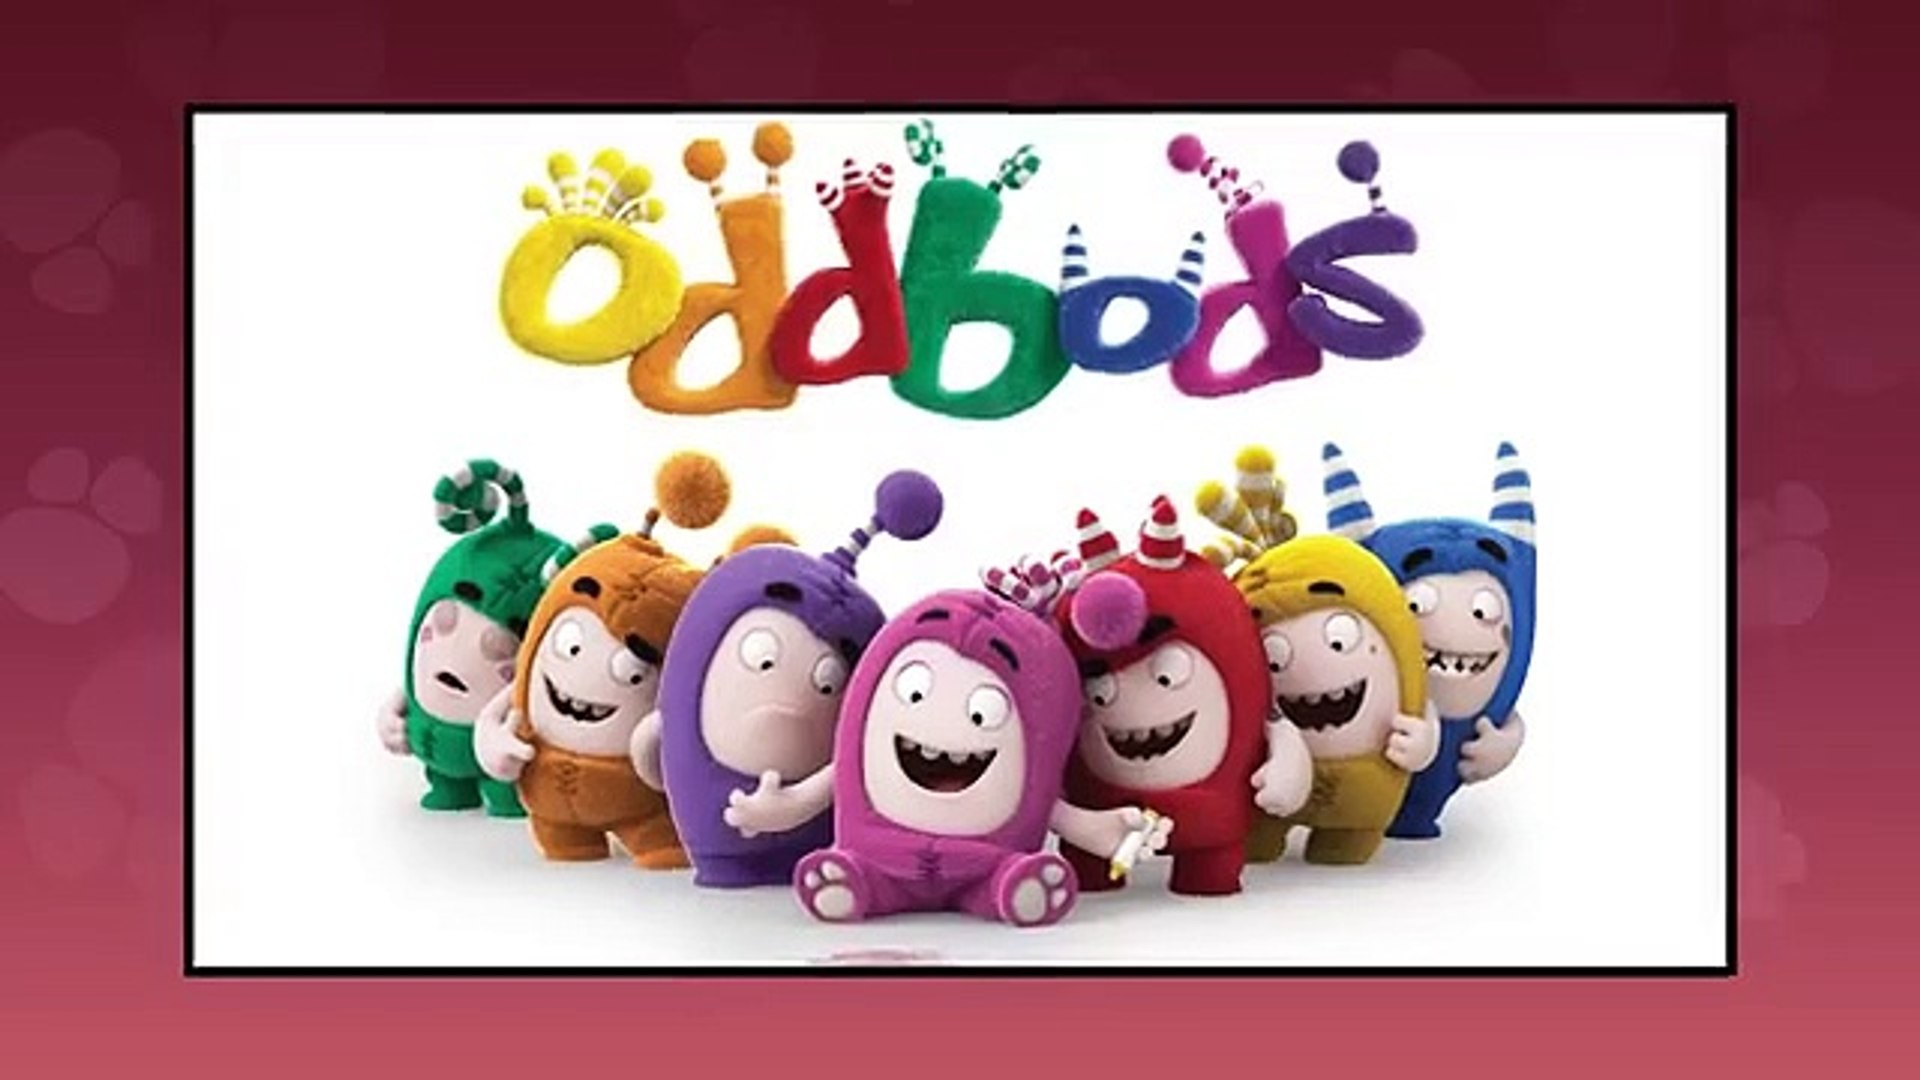 Oddbods Funny Cartoons For Kids 2017 02 Tv Hd 2019 Cinema Edy Action